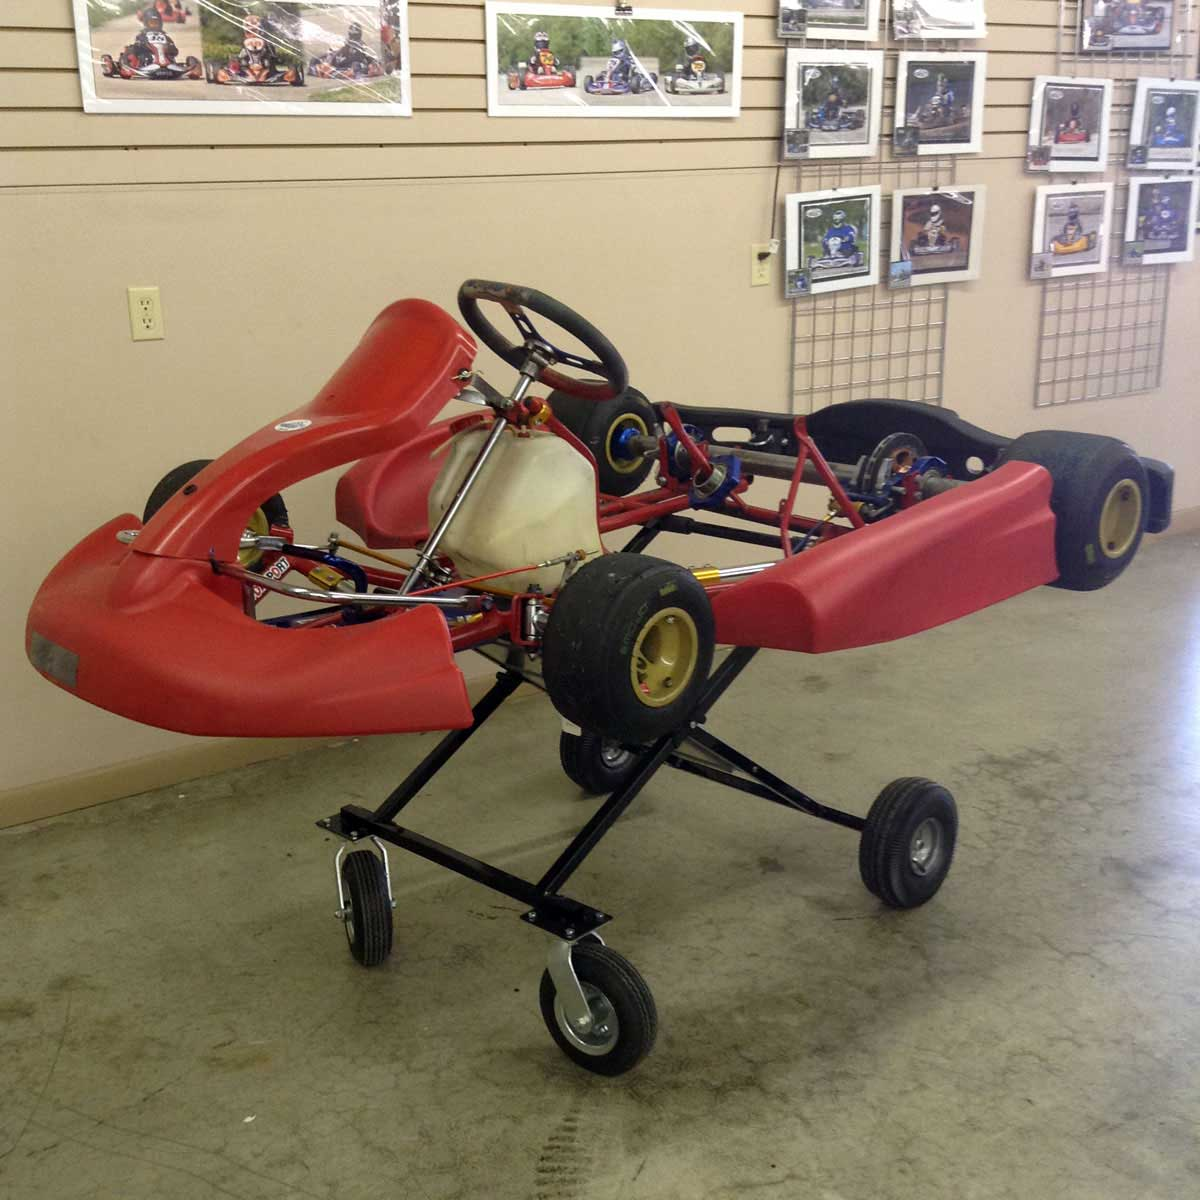 Karts for sale concept haulers motor speedway for Motor go kart for sale